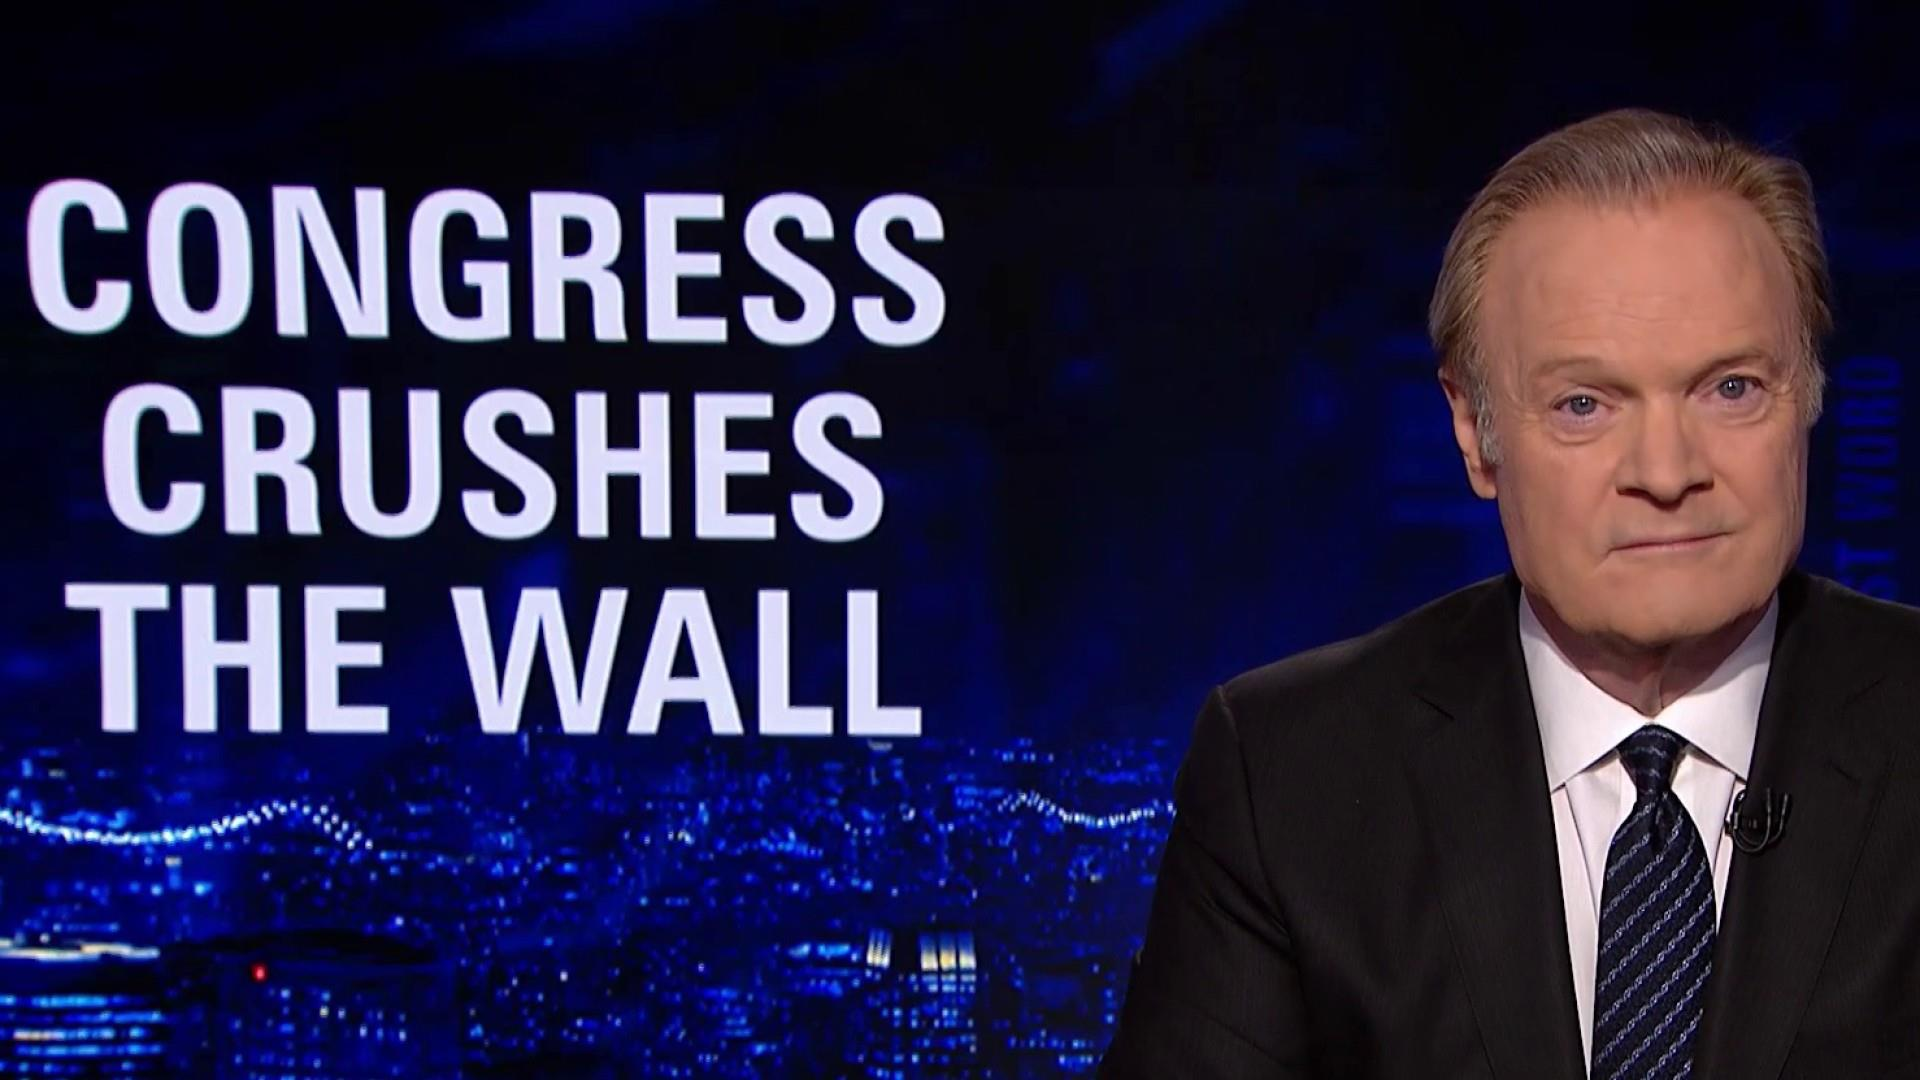 Trump to declare a national emergency over the wall